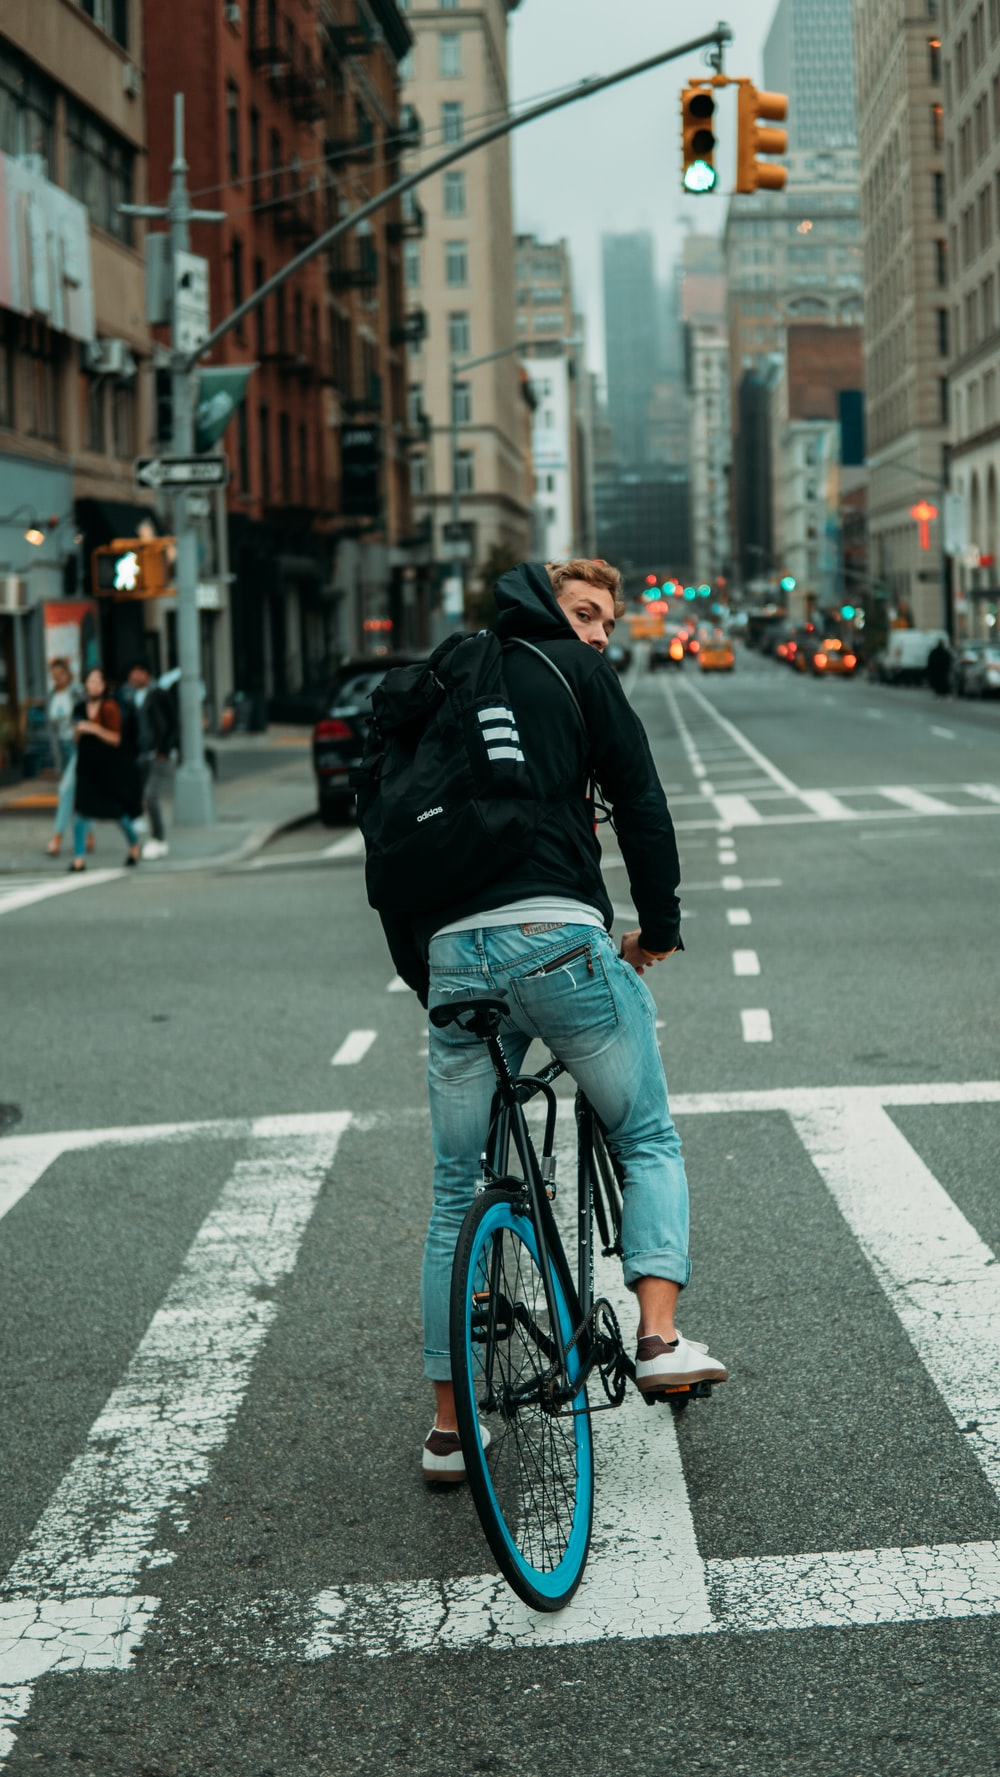 man in black jacket and blue denim jeans riding bicycle on road during daytime